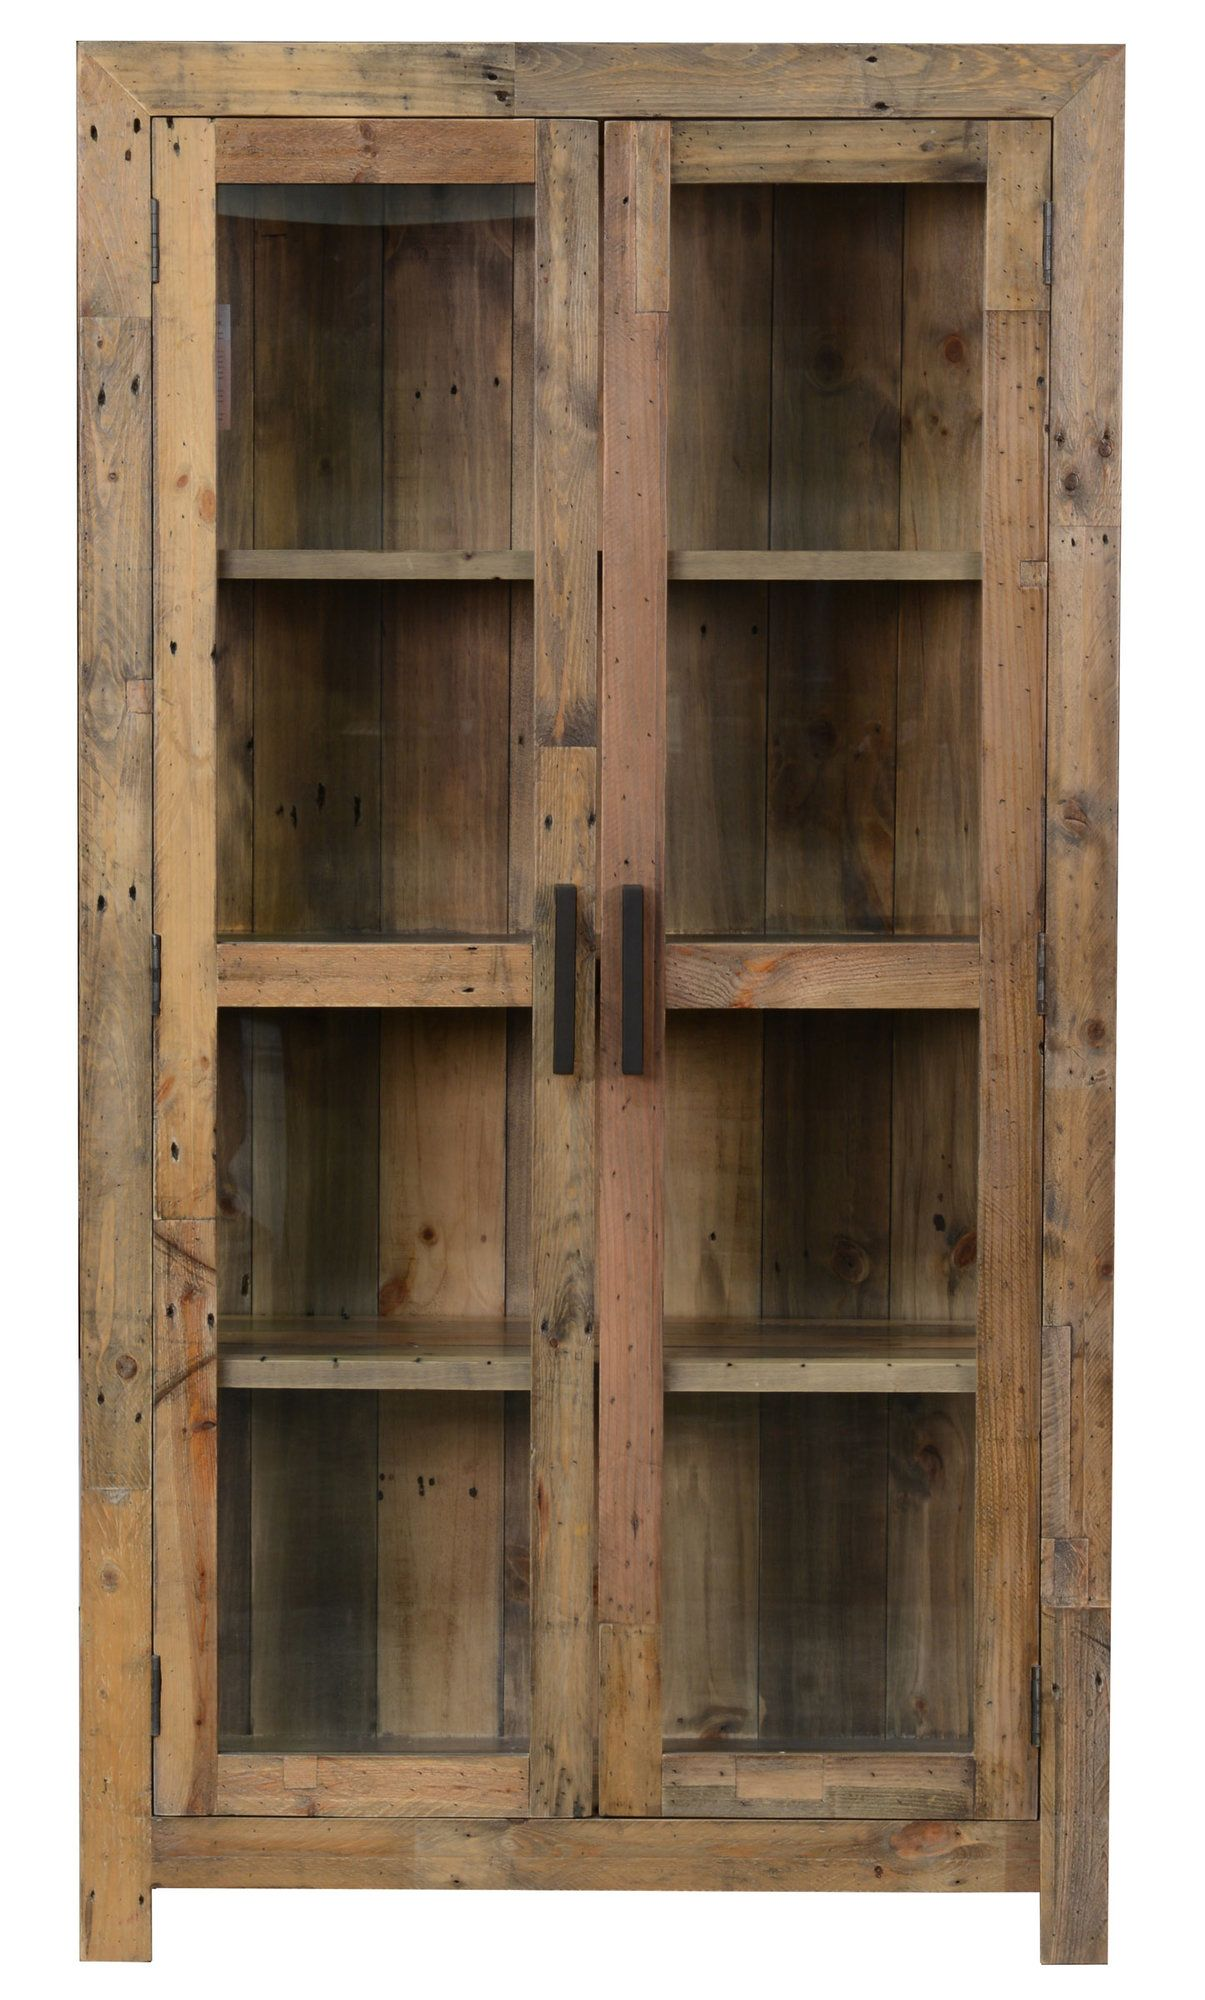 1 Door Wide And Put Old Glass Door Purchased At Flea Market On The Top Rustic China Cabinet Rustic Cabinets Wood Display